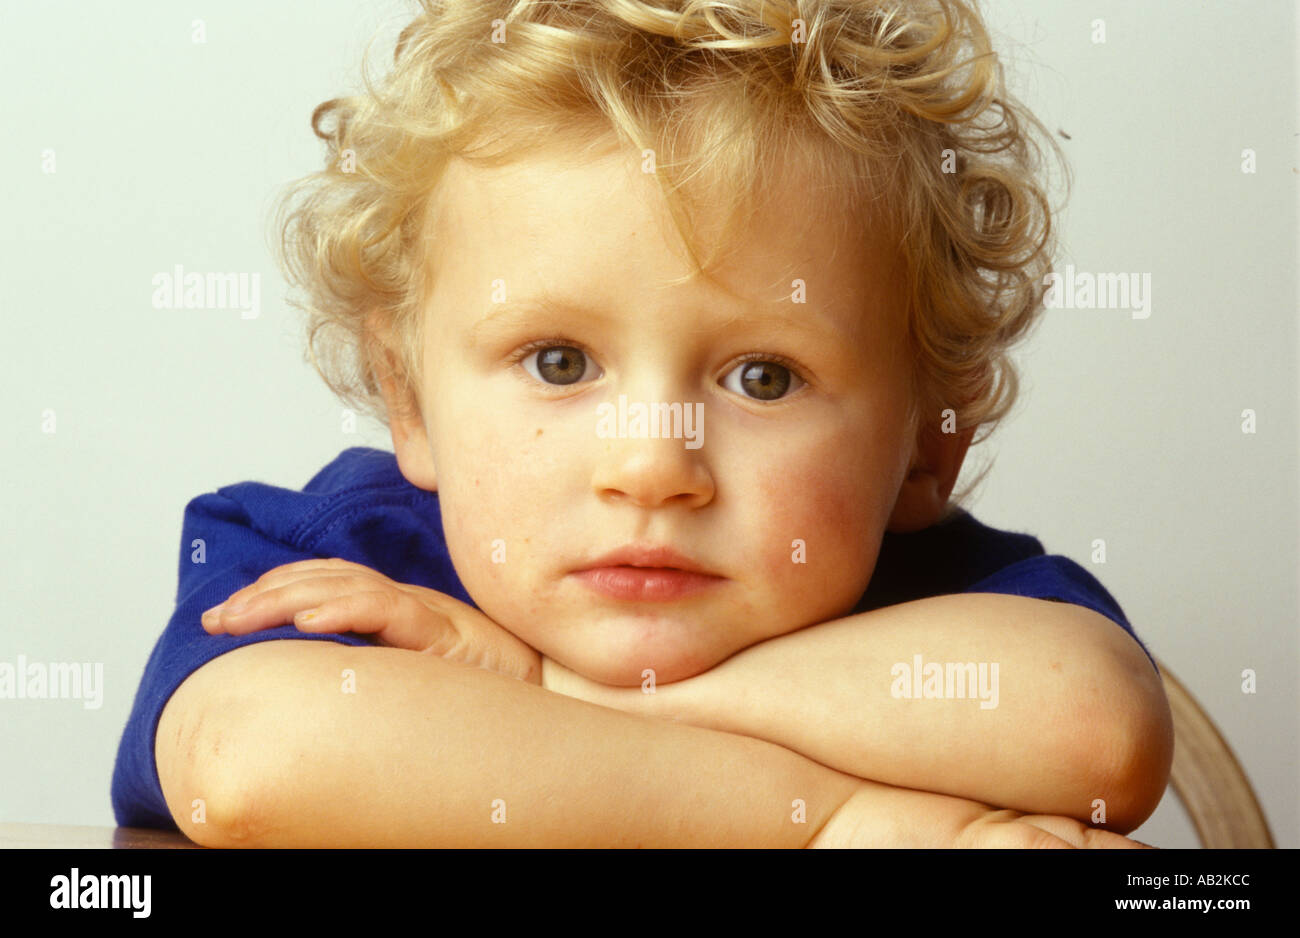 portrait of young boy looking angelic - Stock Image